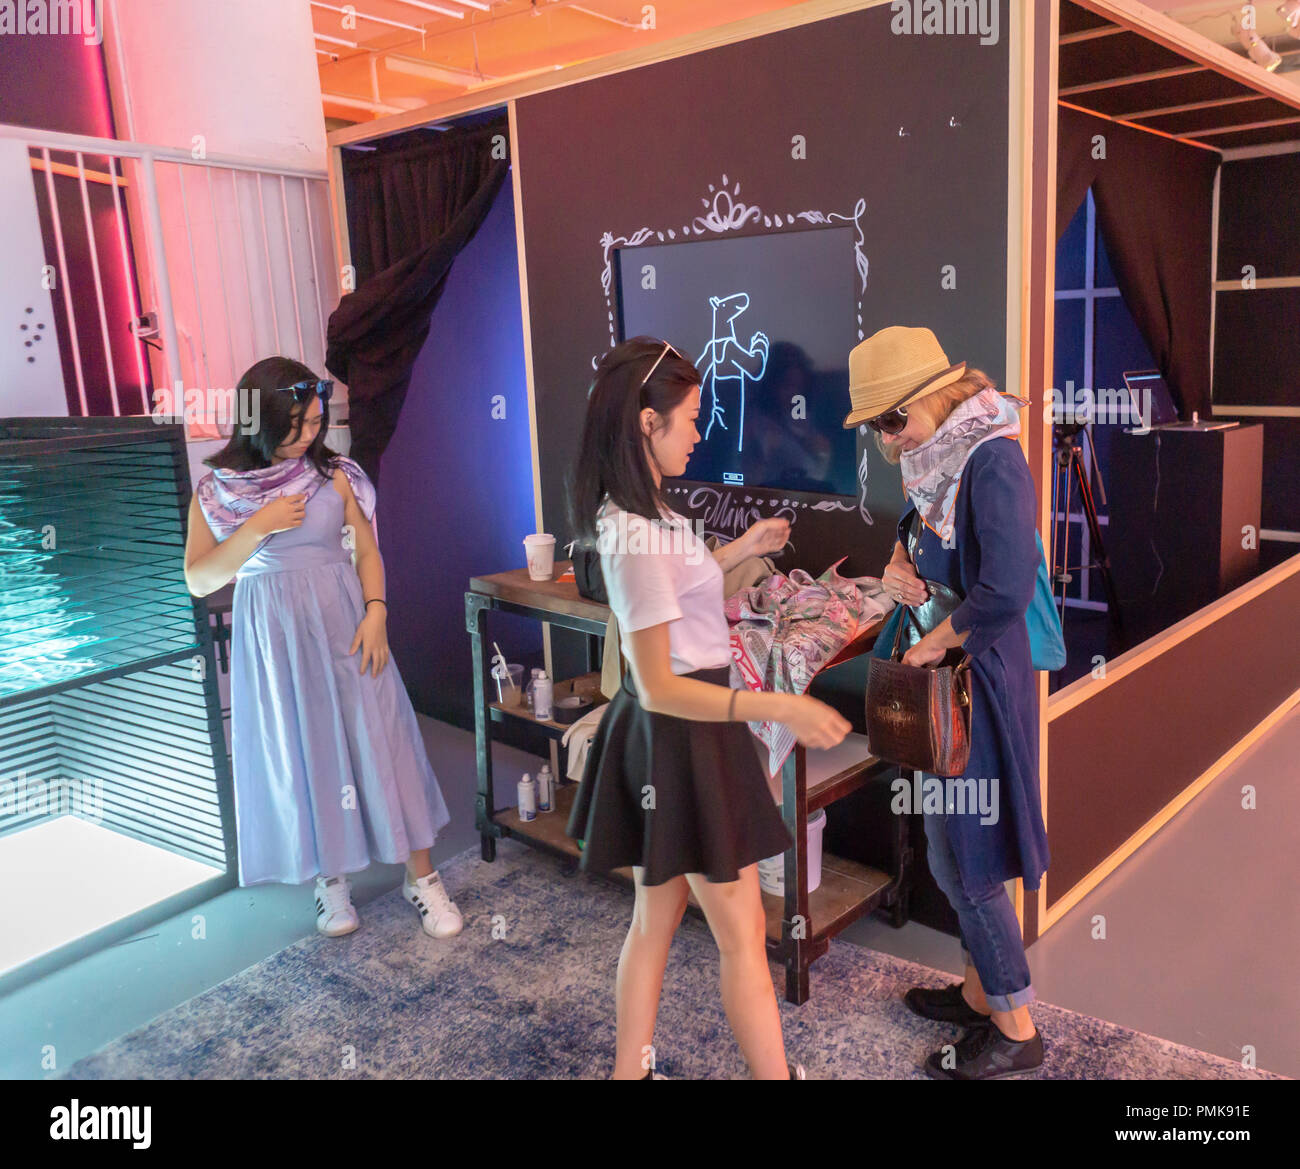 Hermes Store New York Photos   Hermes Store New York Images - Alamy 76aacc2d630